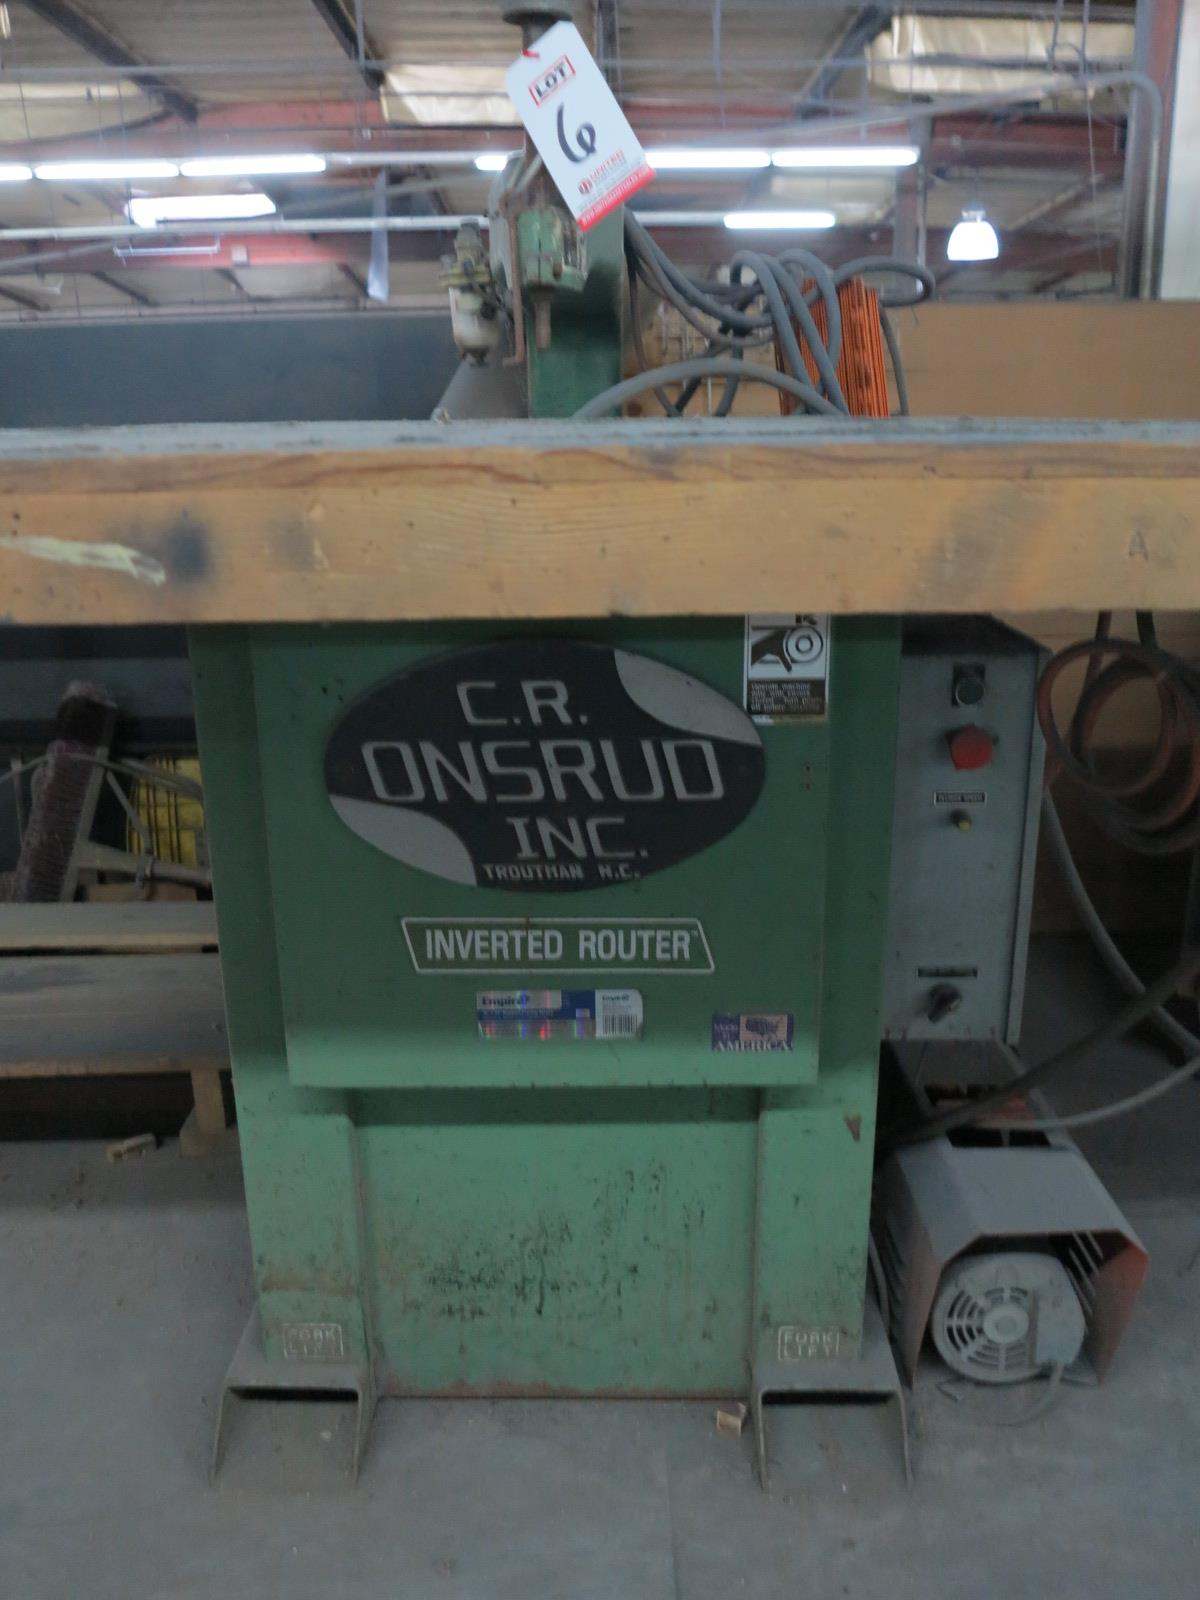 1993 ONSRUD INVERTED ROUTER, MODEL 3025, S/N 9330907, OUT OF SERVICE - Image 2 of 3